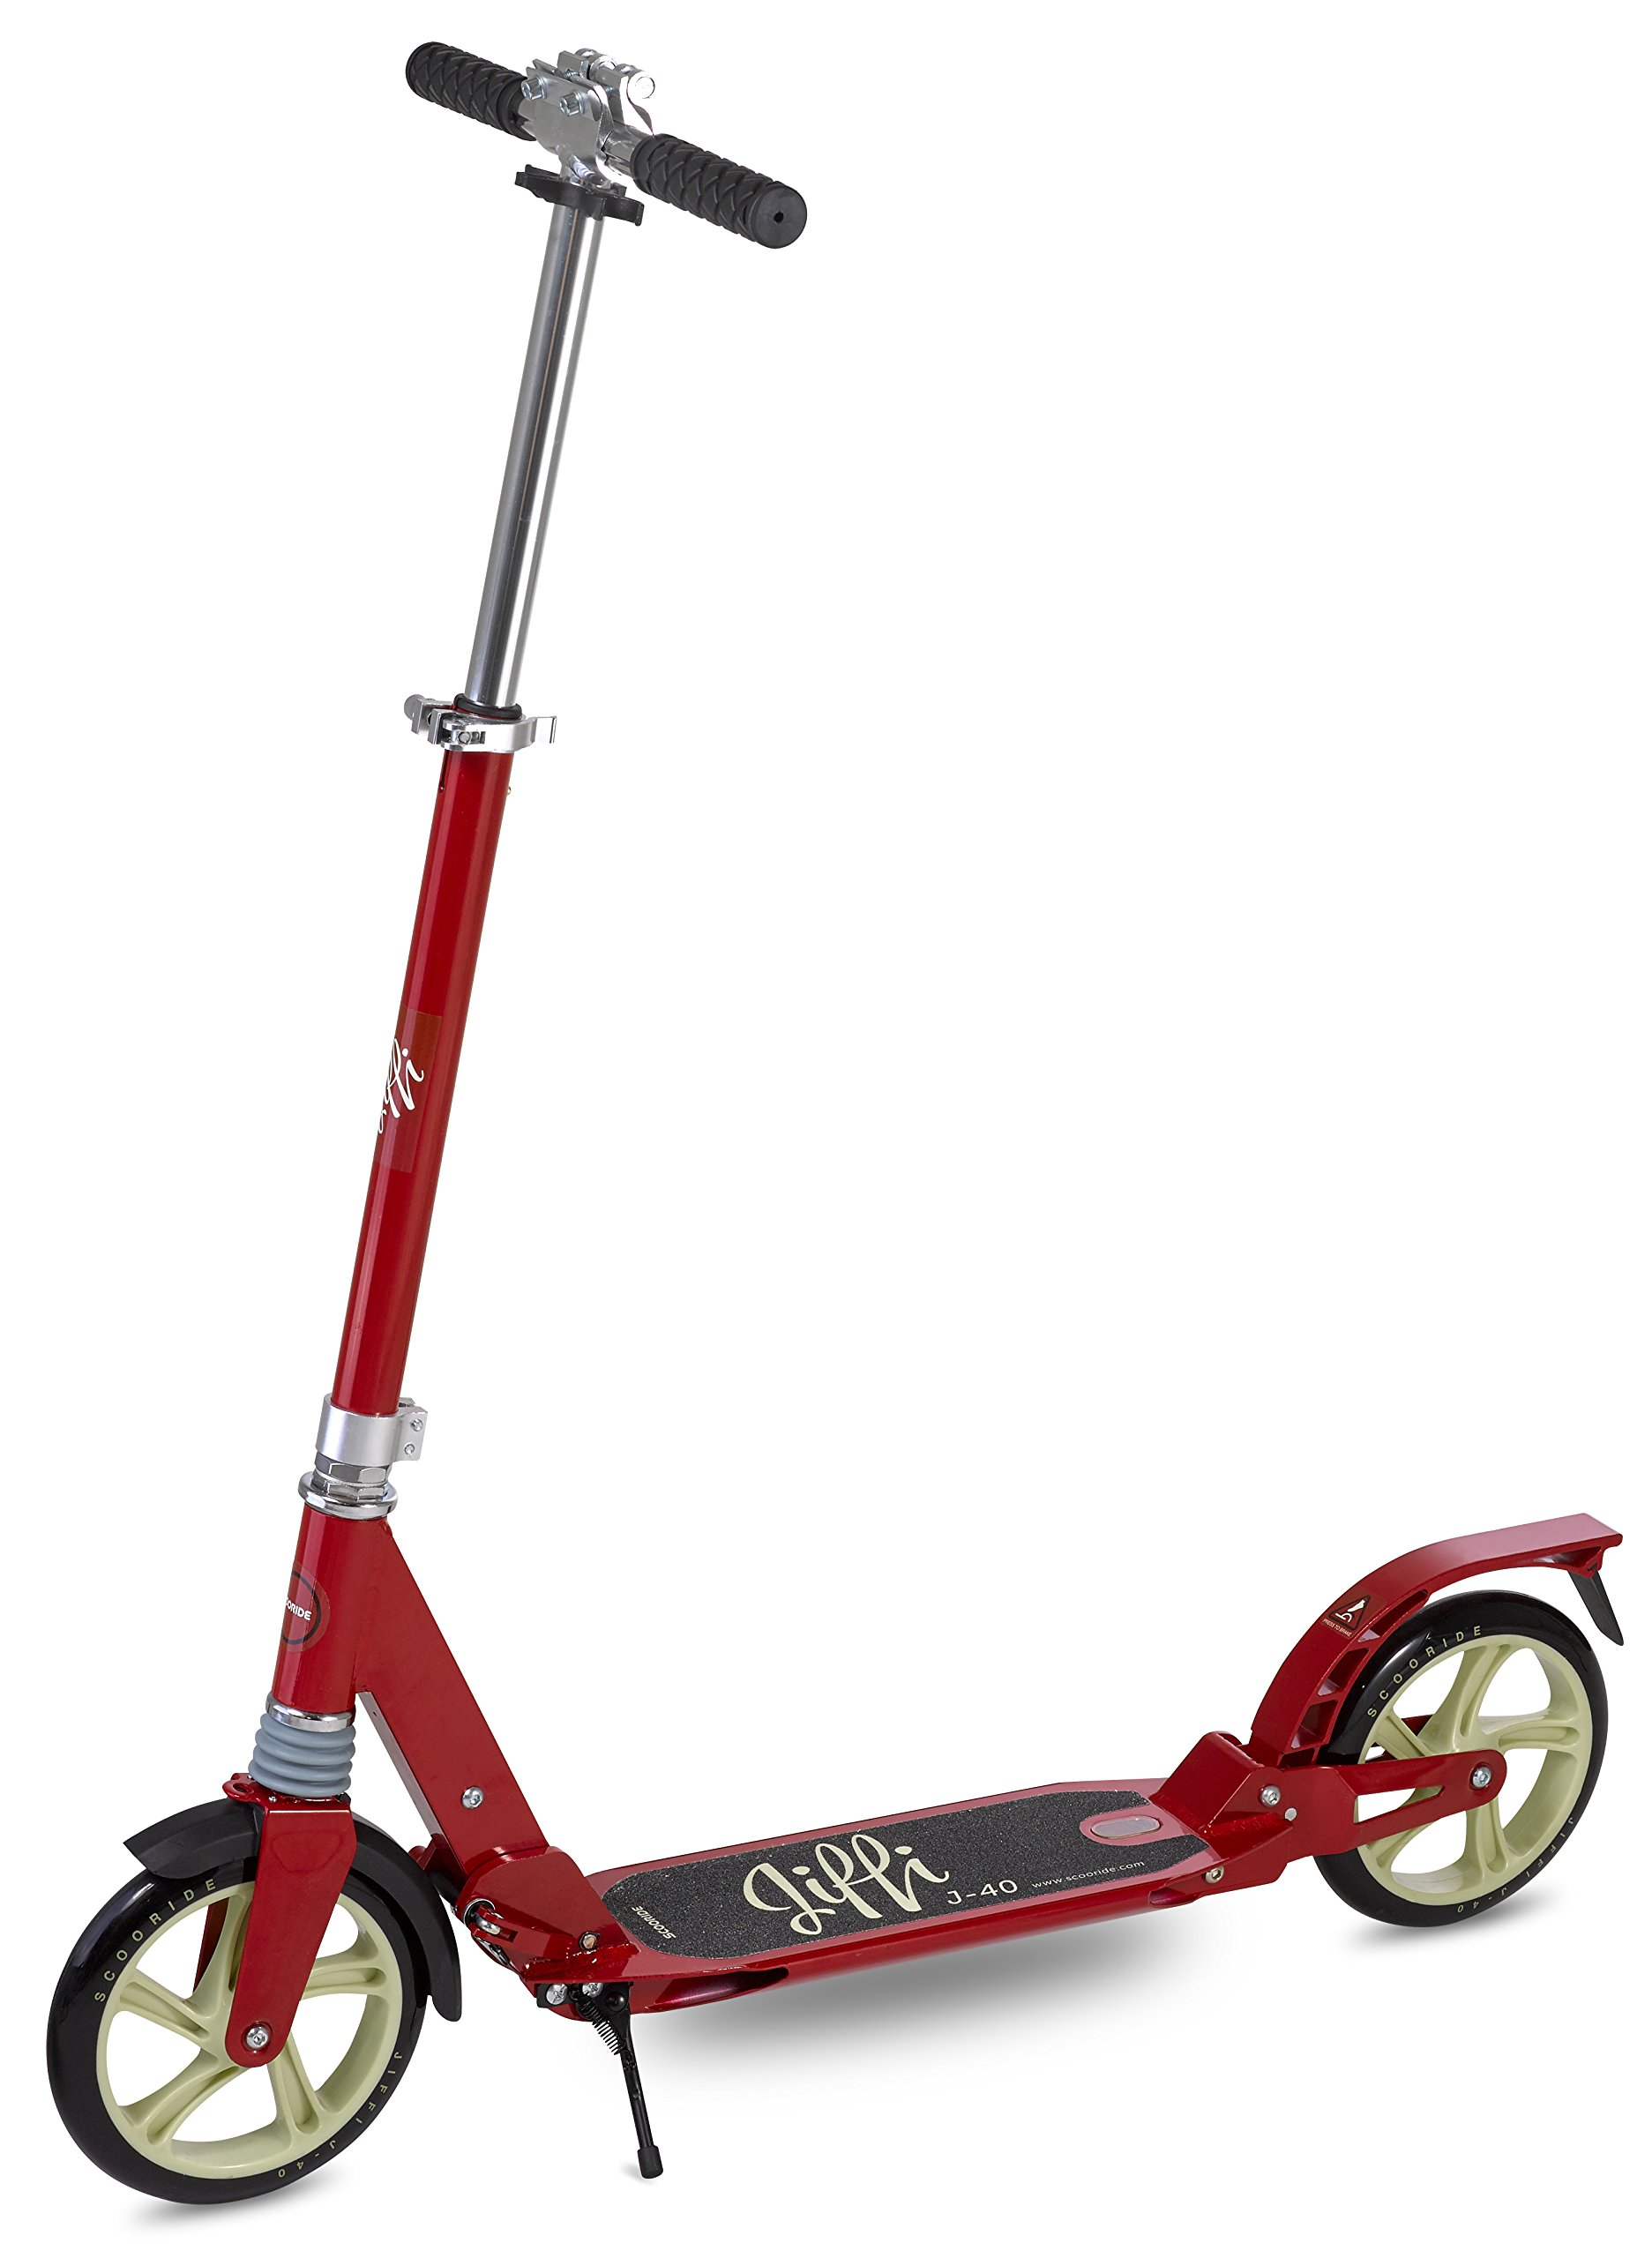 Scooride Jiffi J-40 Premium Folding Adult Kick Scooter, Red